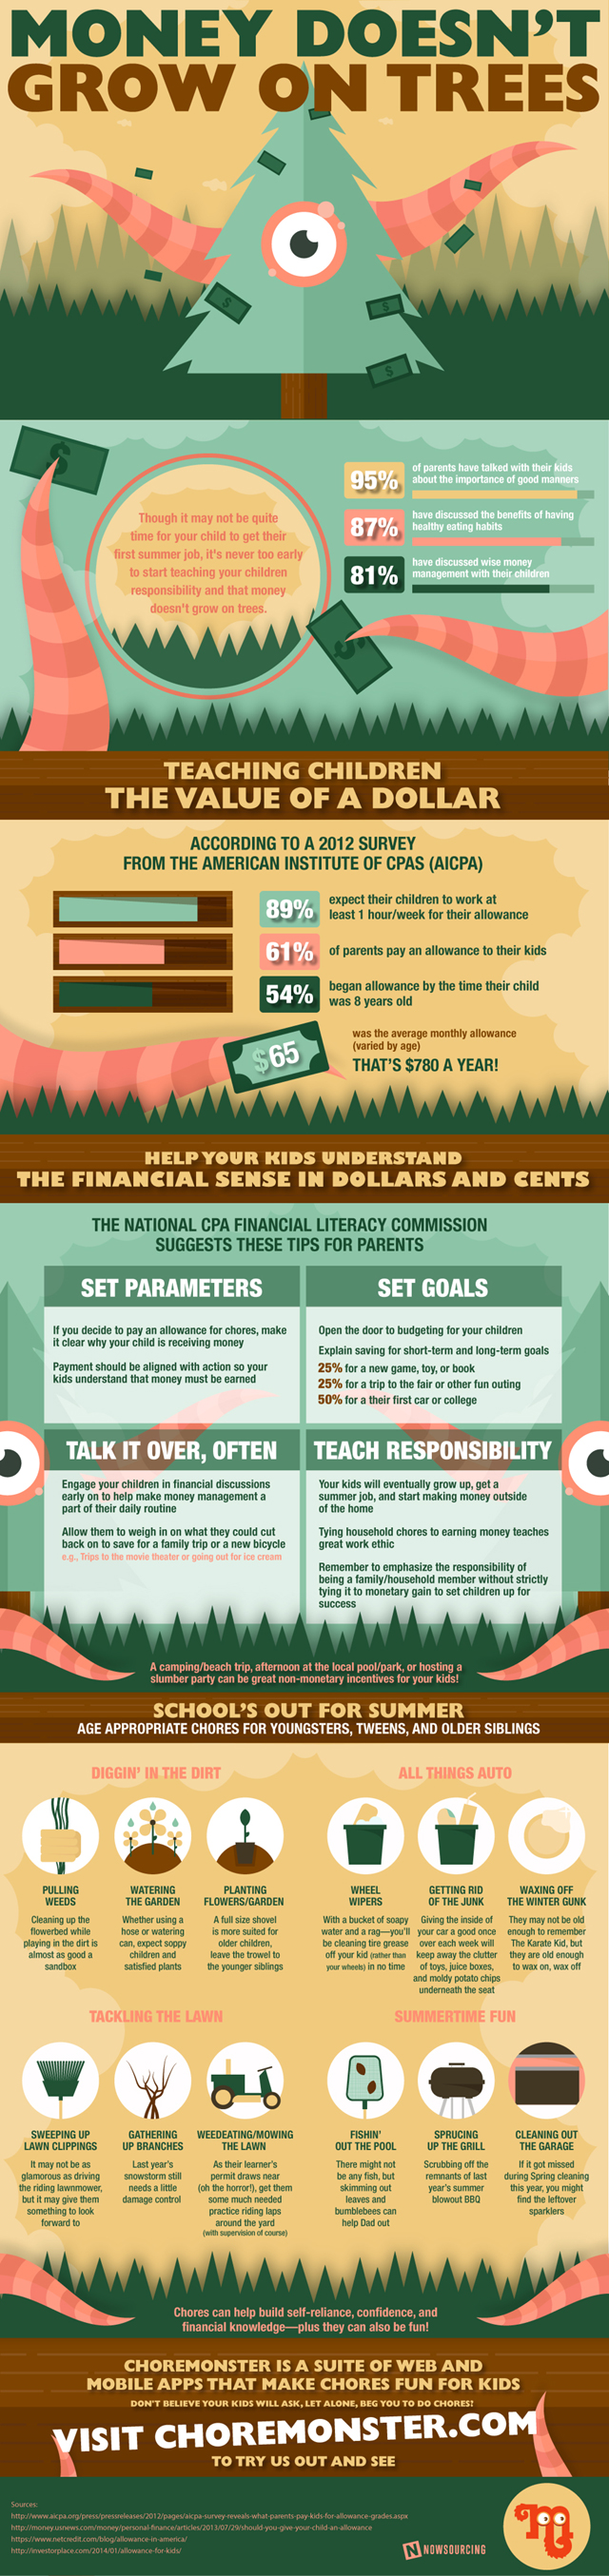 infographic for teaching money management to kids